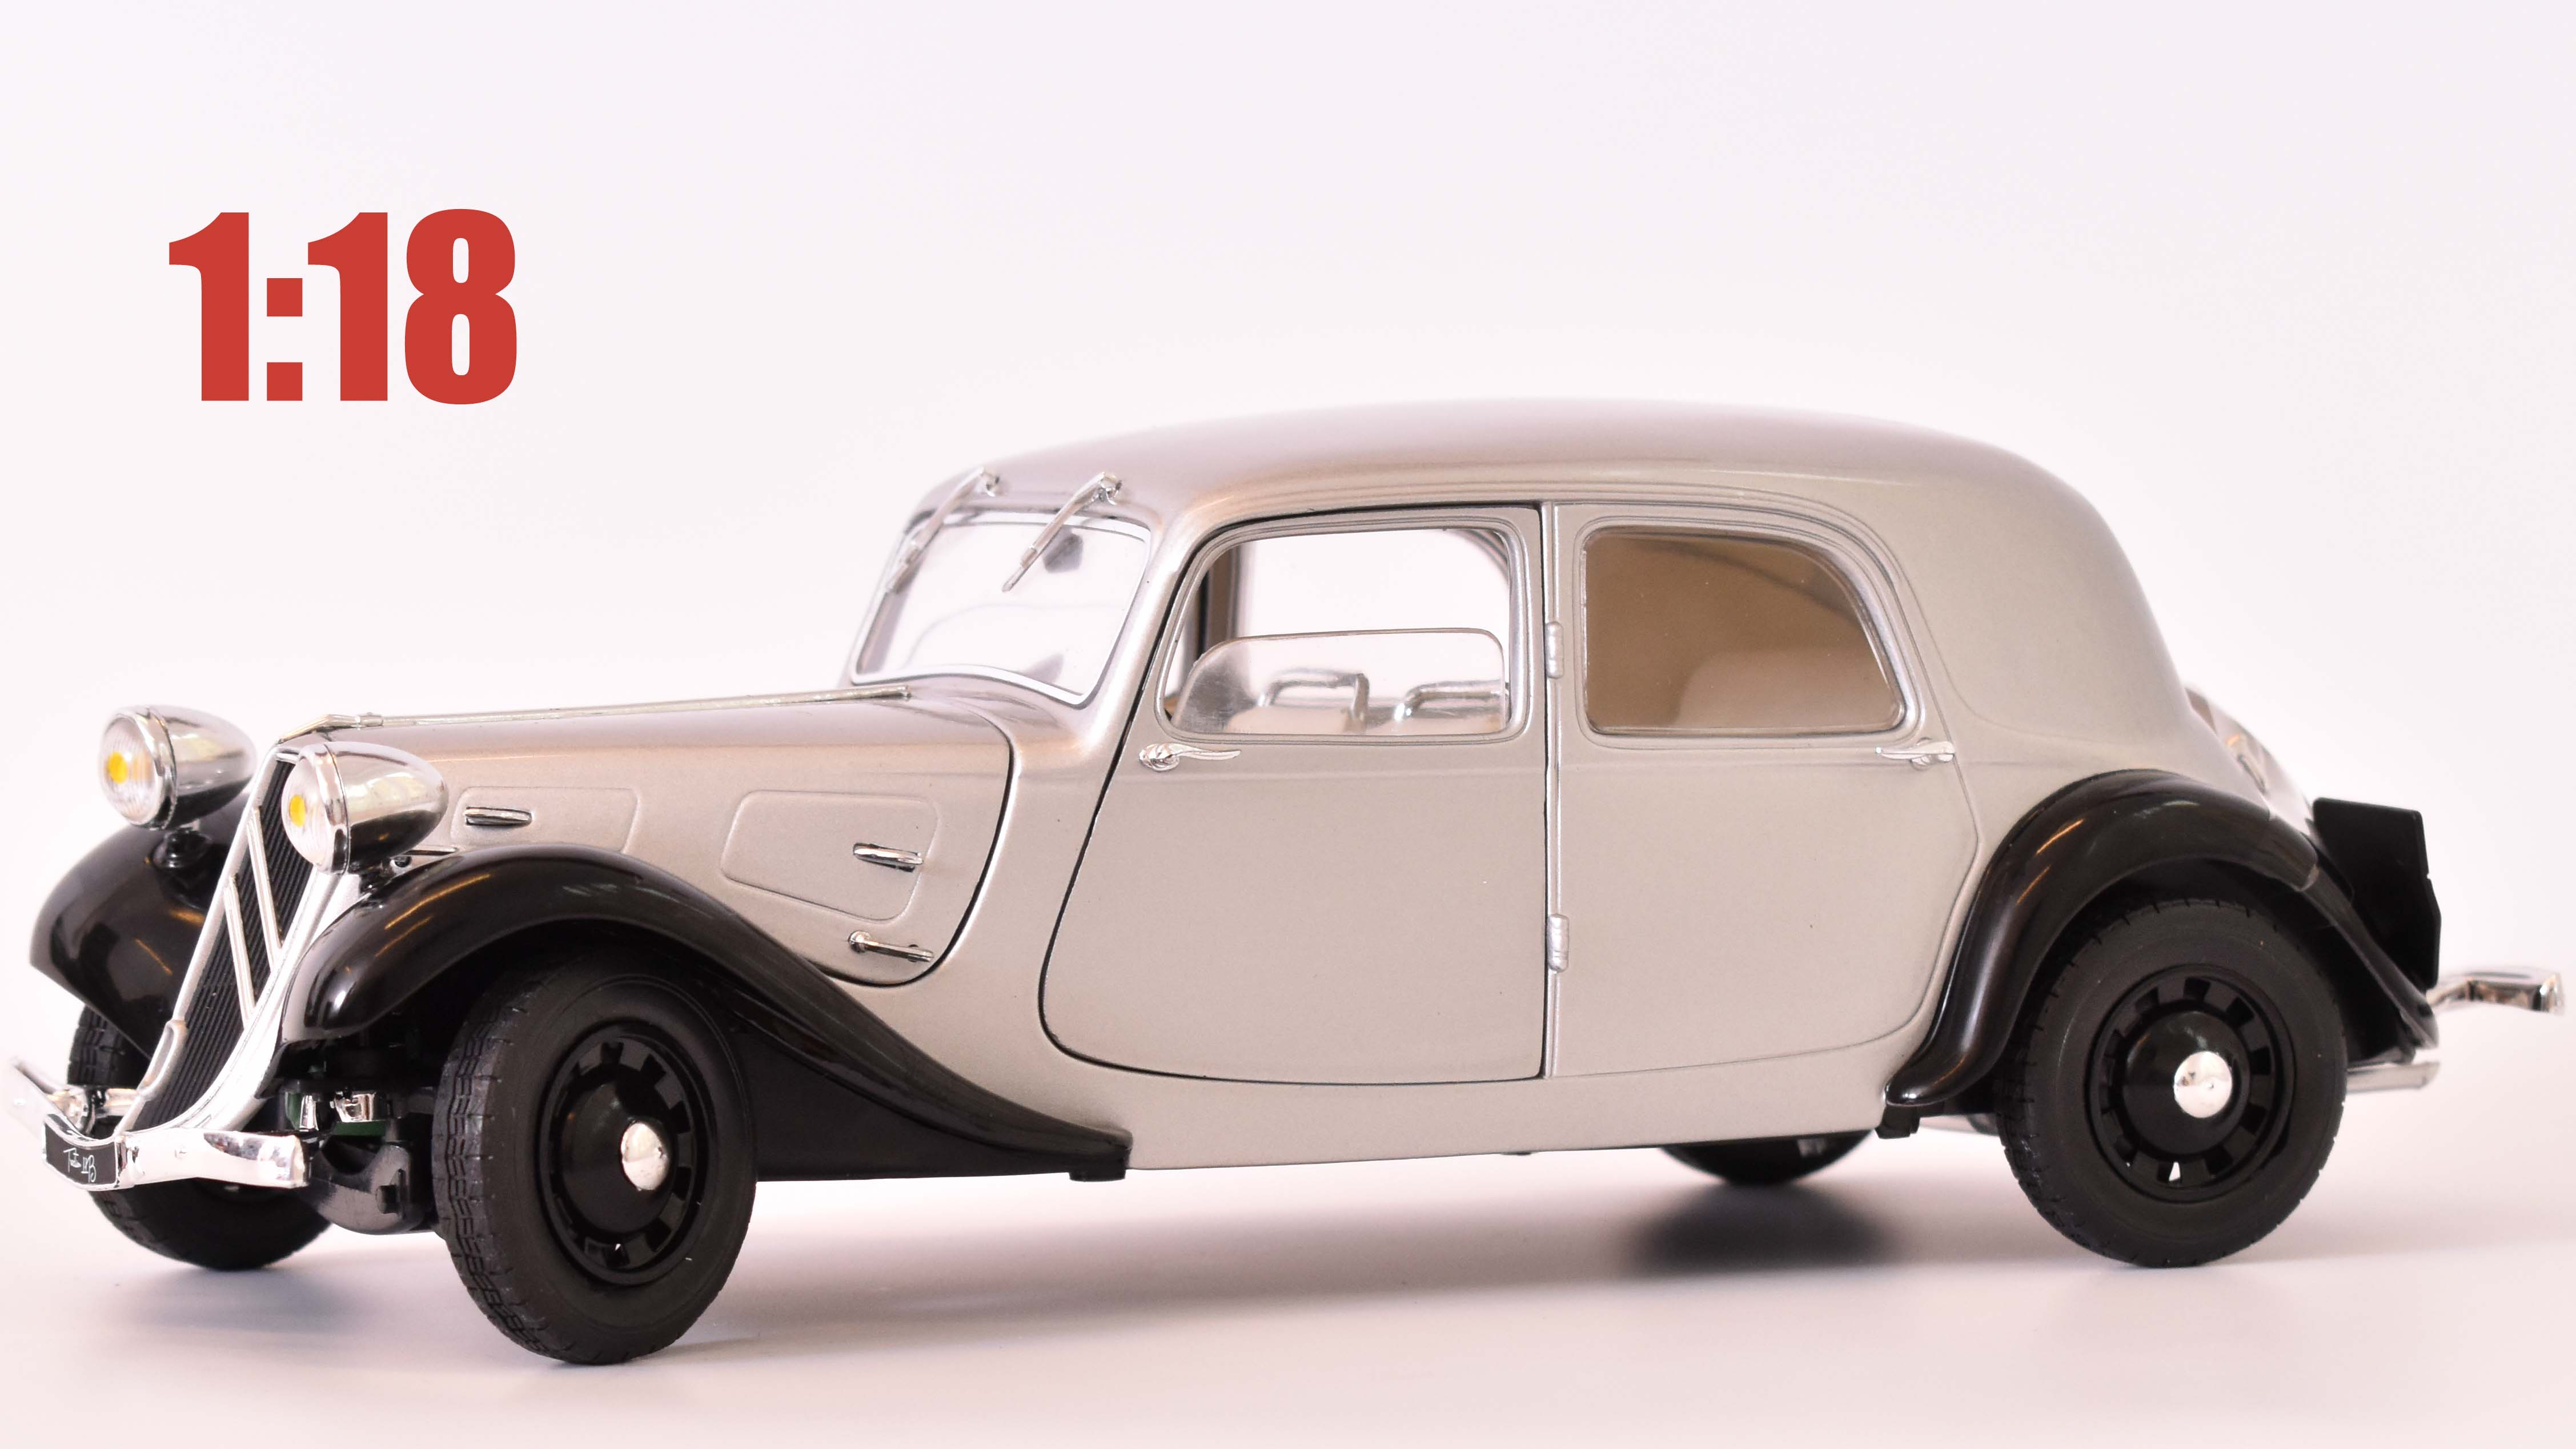 Citroen Traction 11B - 1973 1:18 - Solido časopis AutoModels s modelem